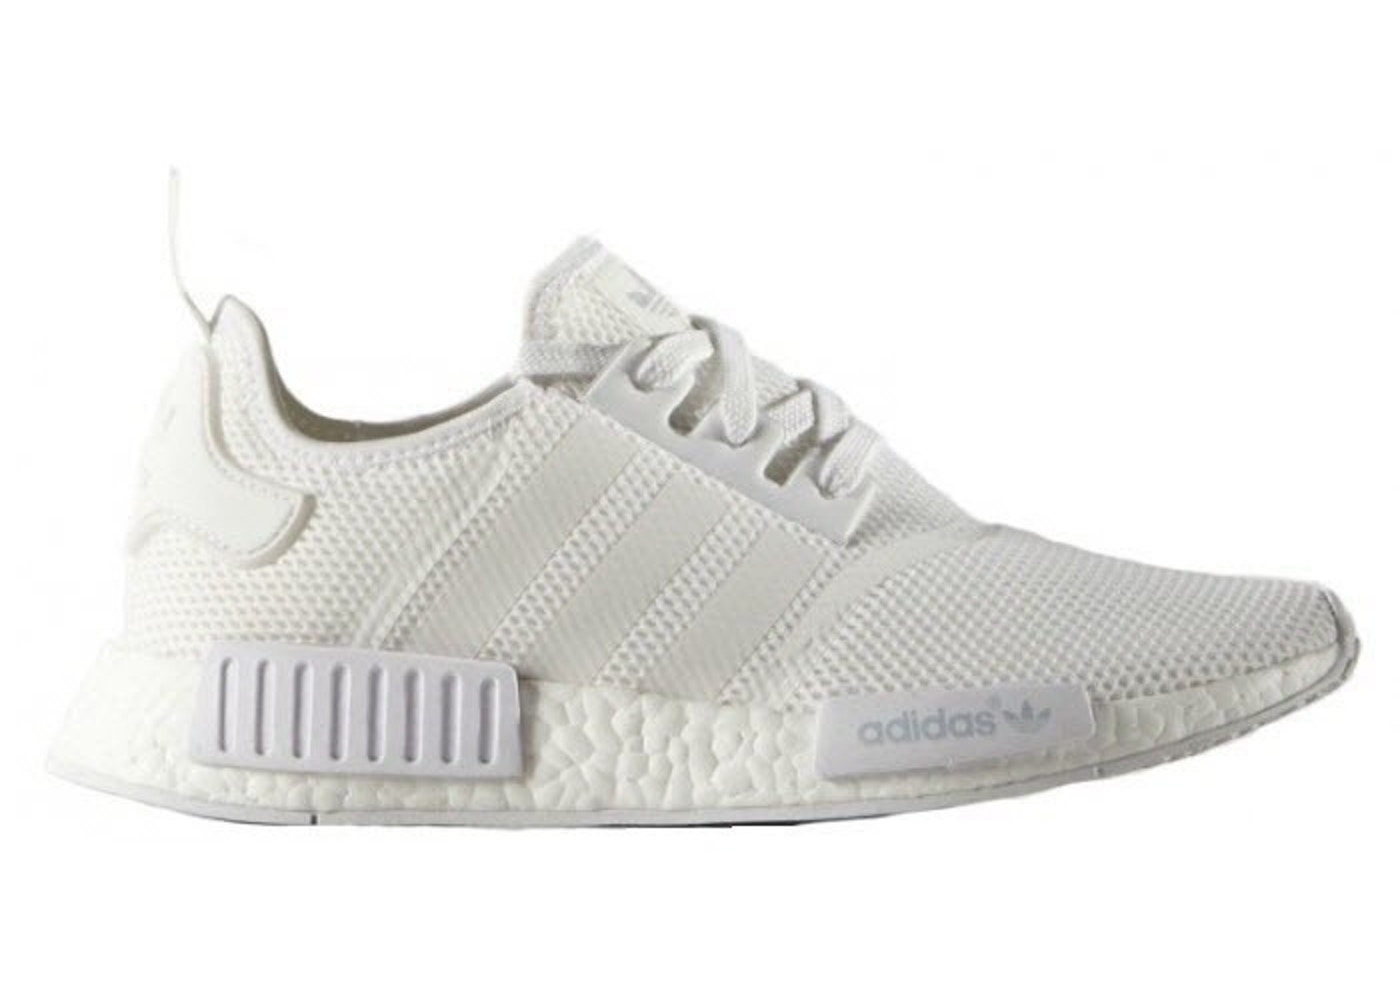 huge selection of 44b2c 83054 adidas NMD R1 White Monochrome